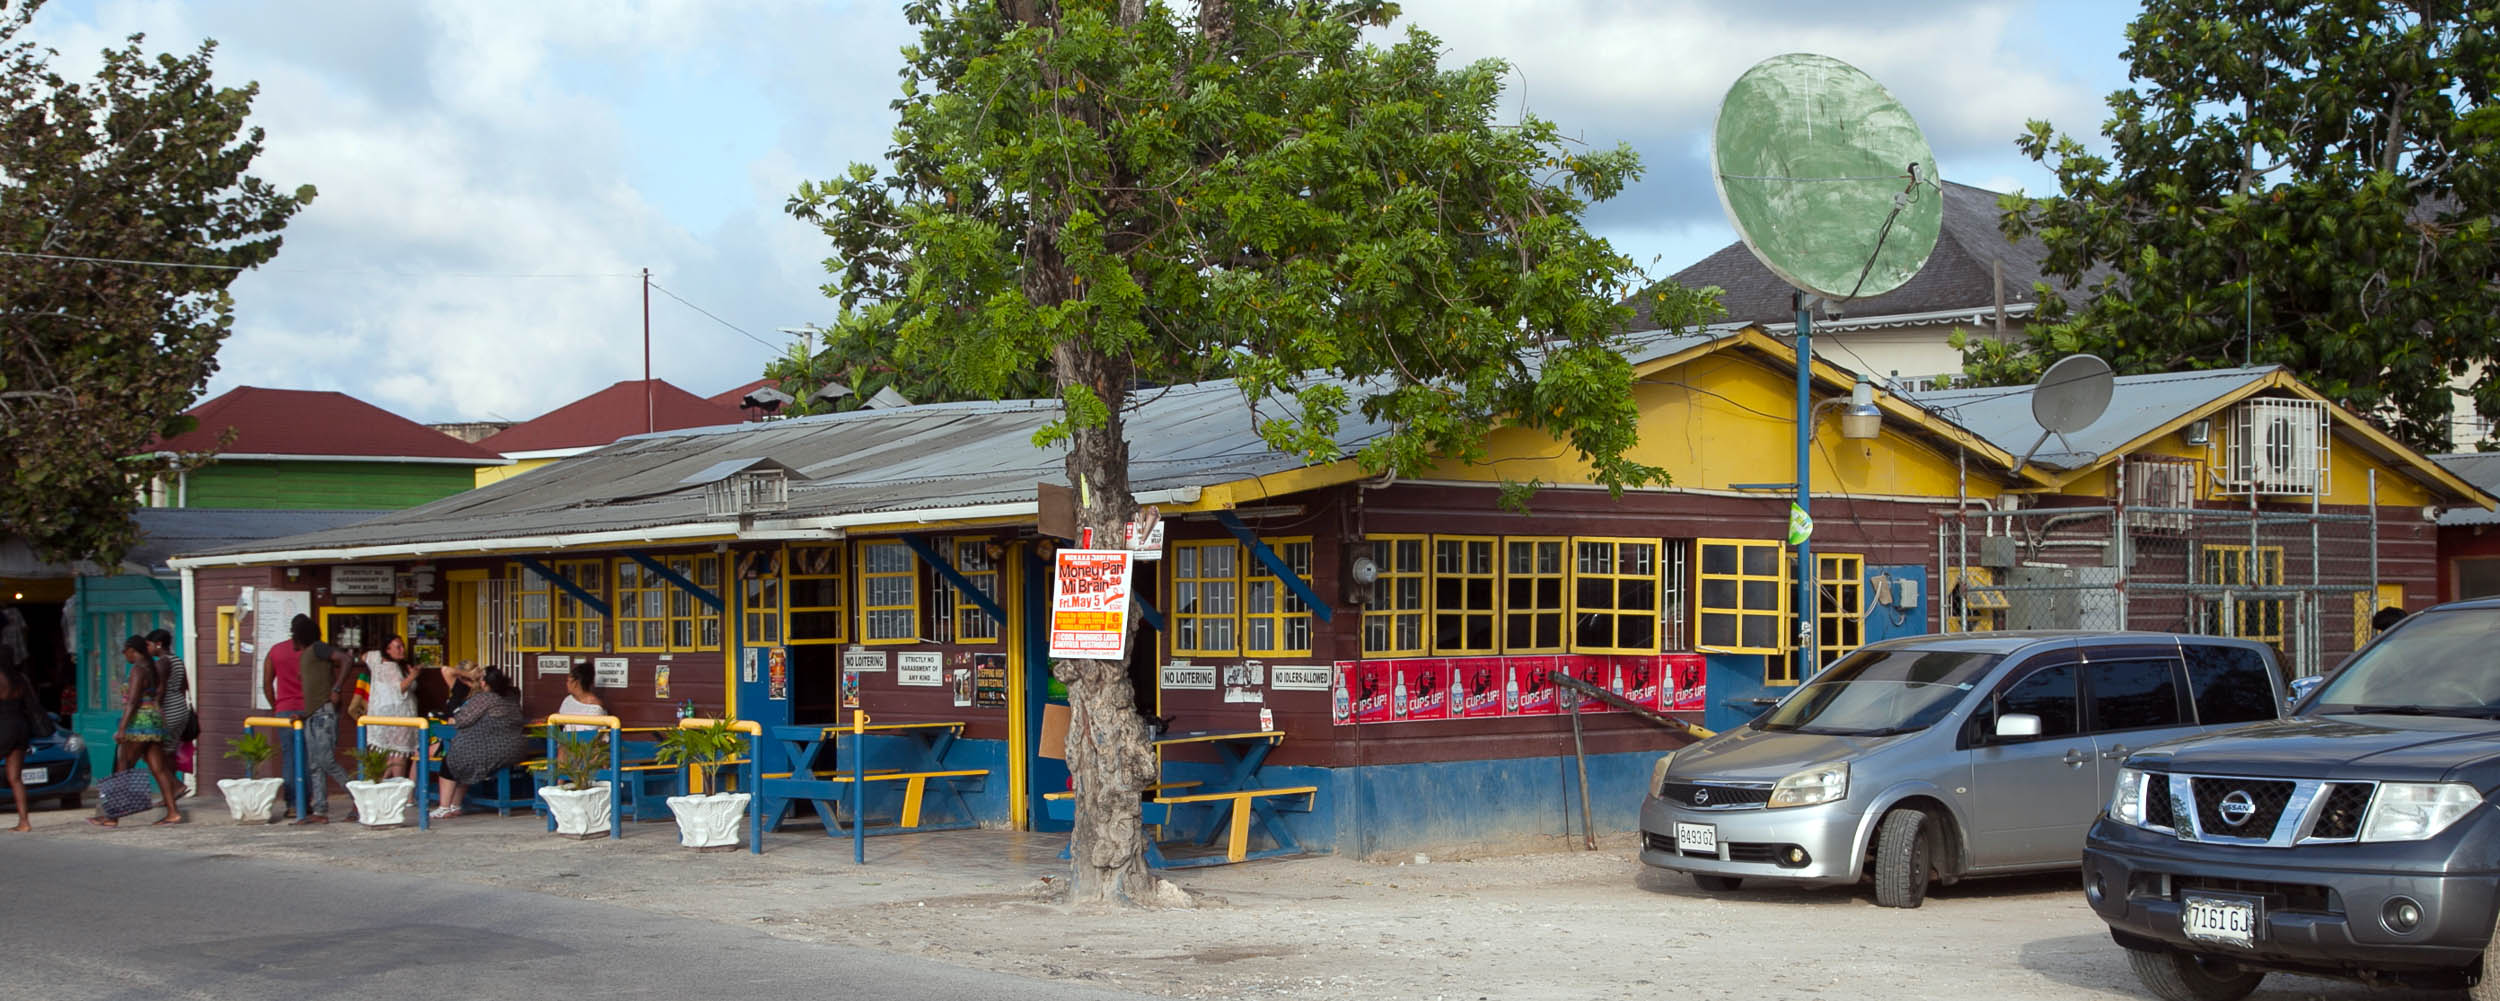 Sea View Sport Bar & Grill [Corner Bar], West End, Negril Jamaica